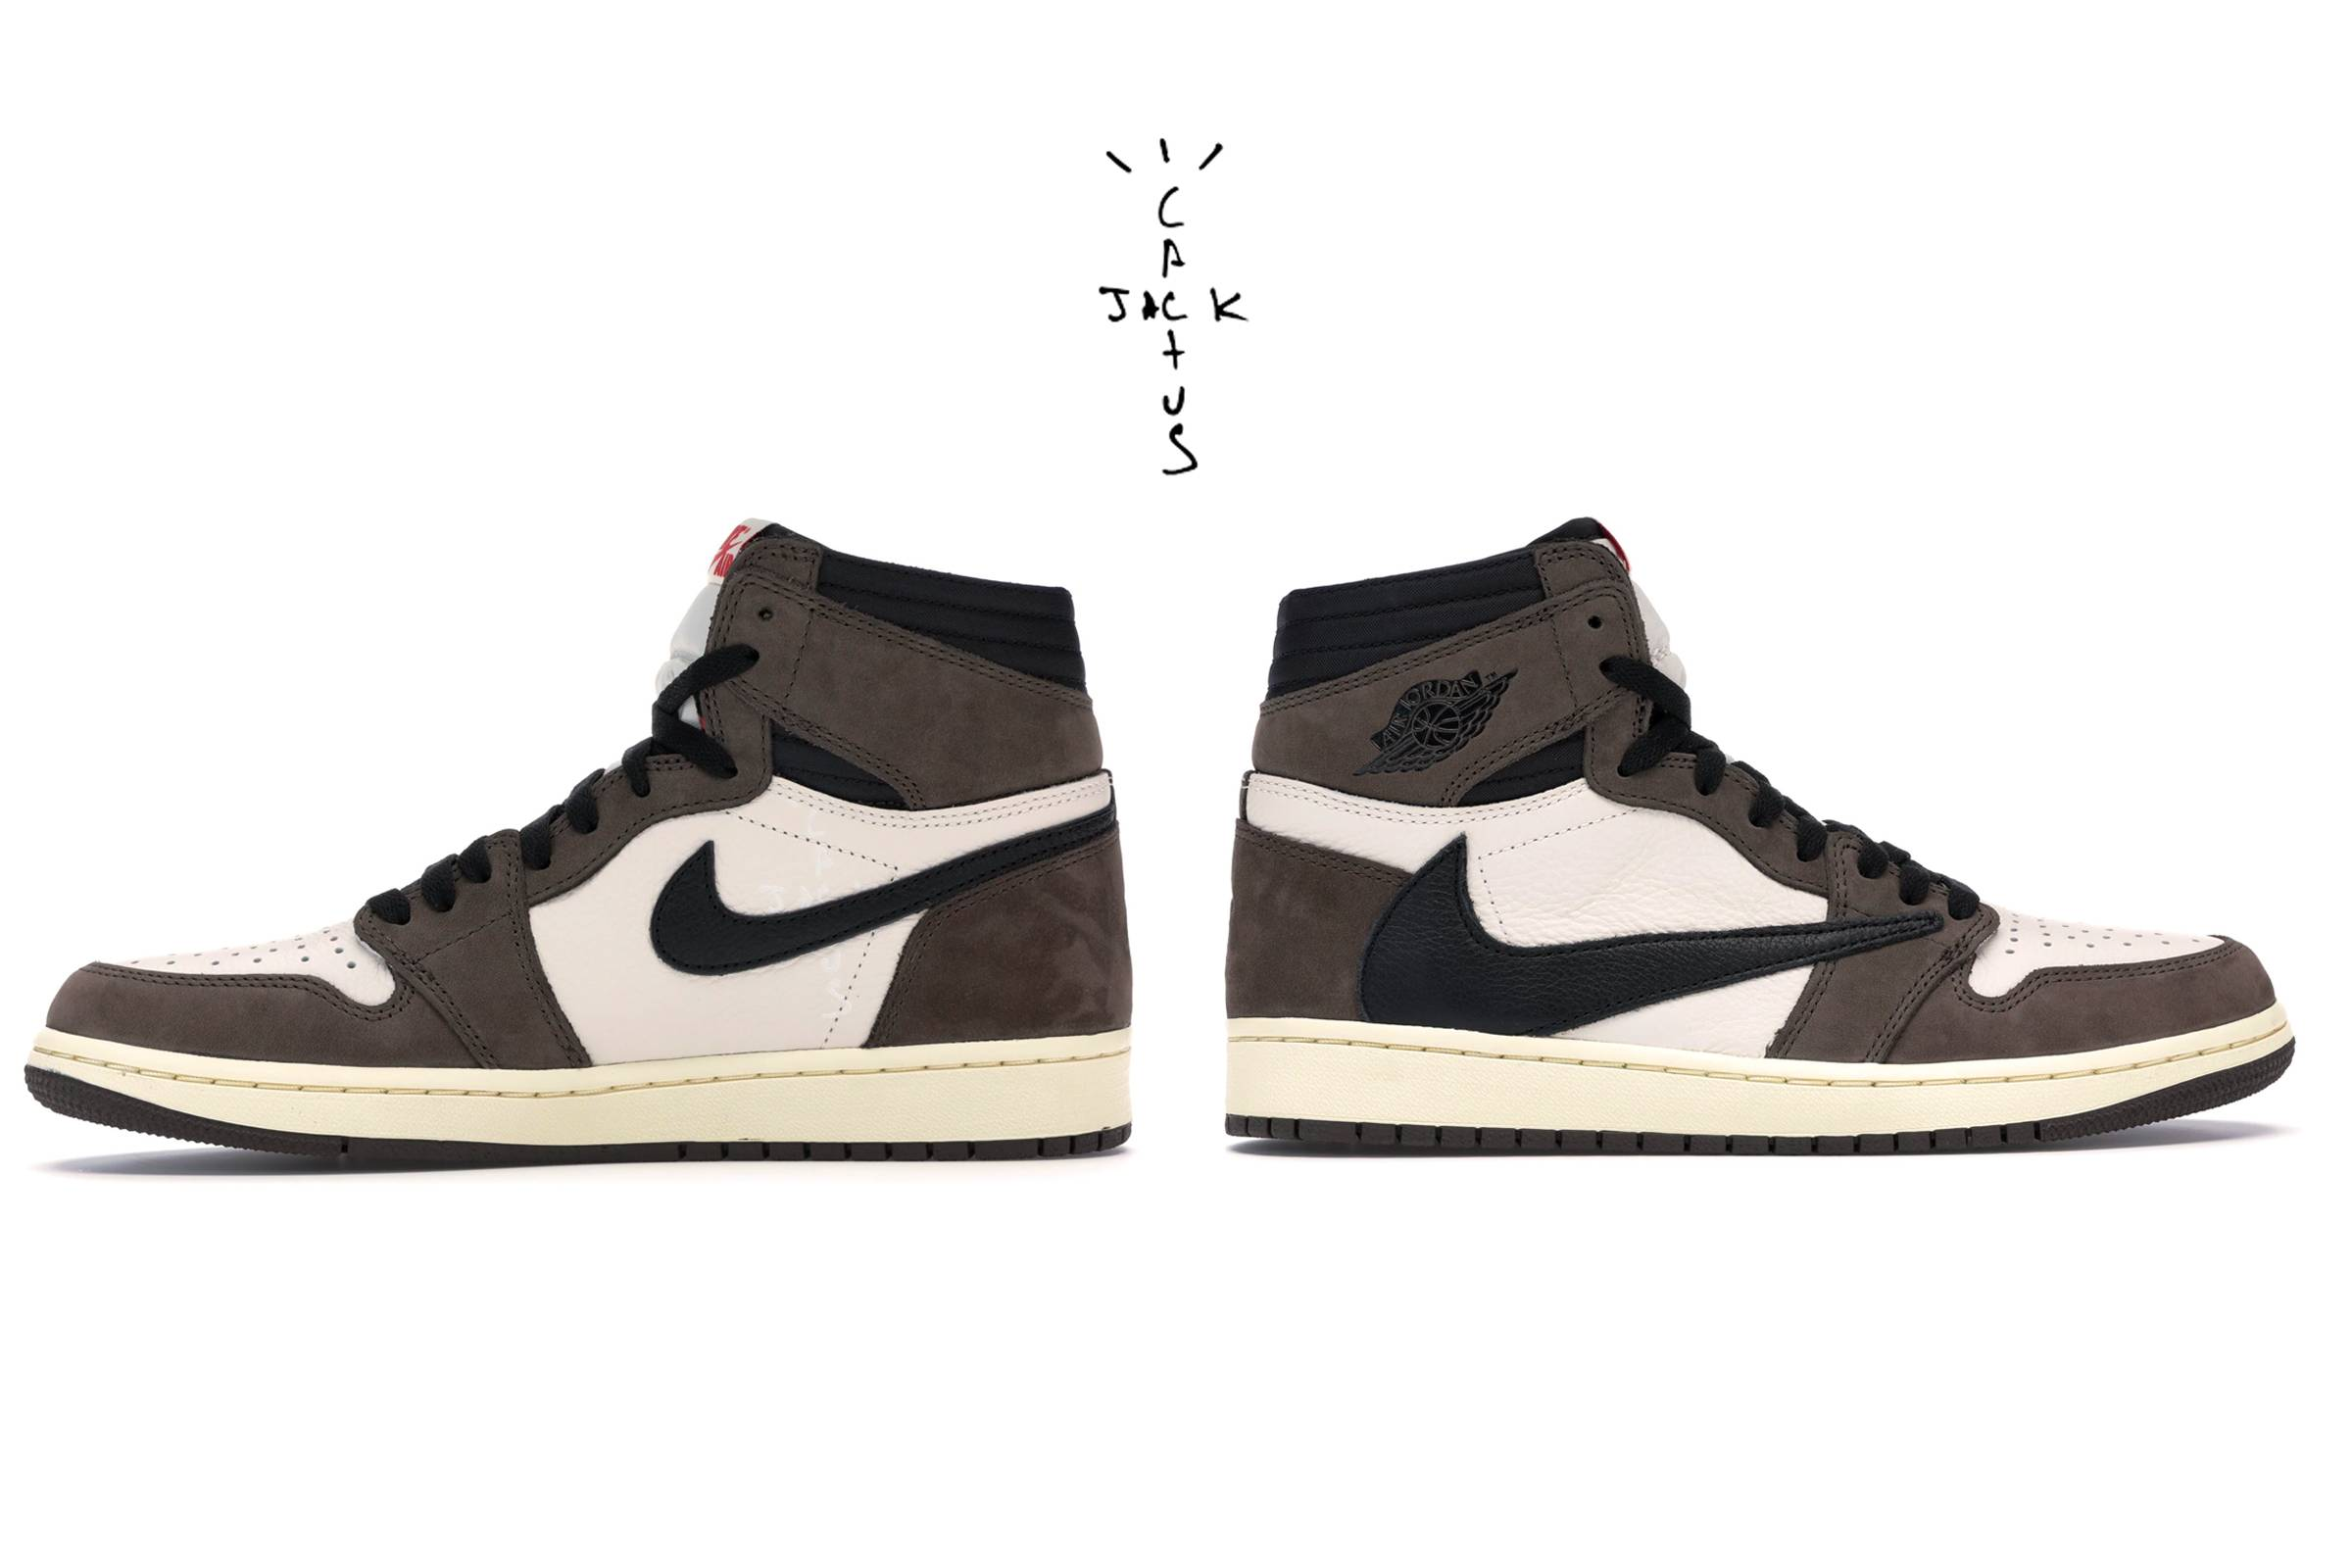 011a47ece5a Classic or Trash: Travis Scott x Air Jordan 1